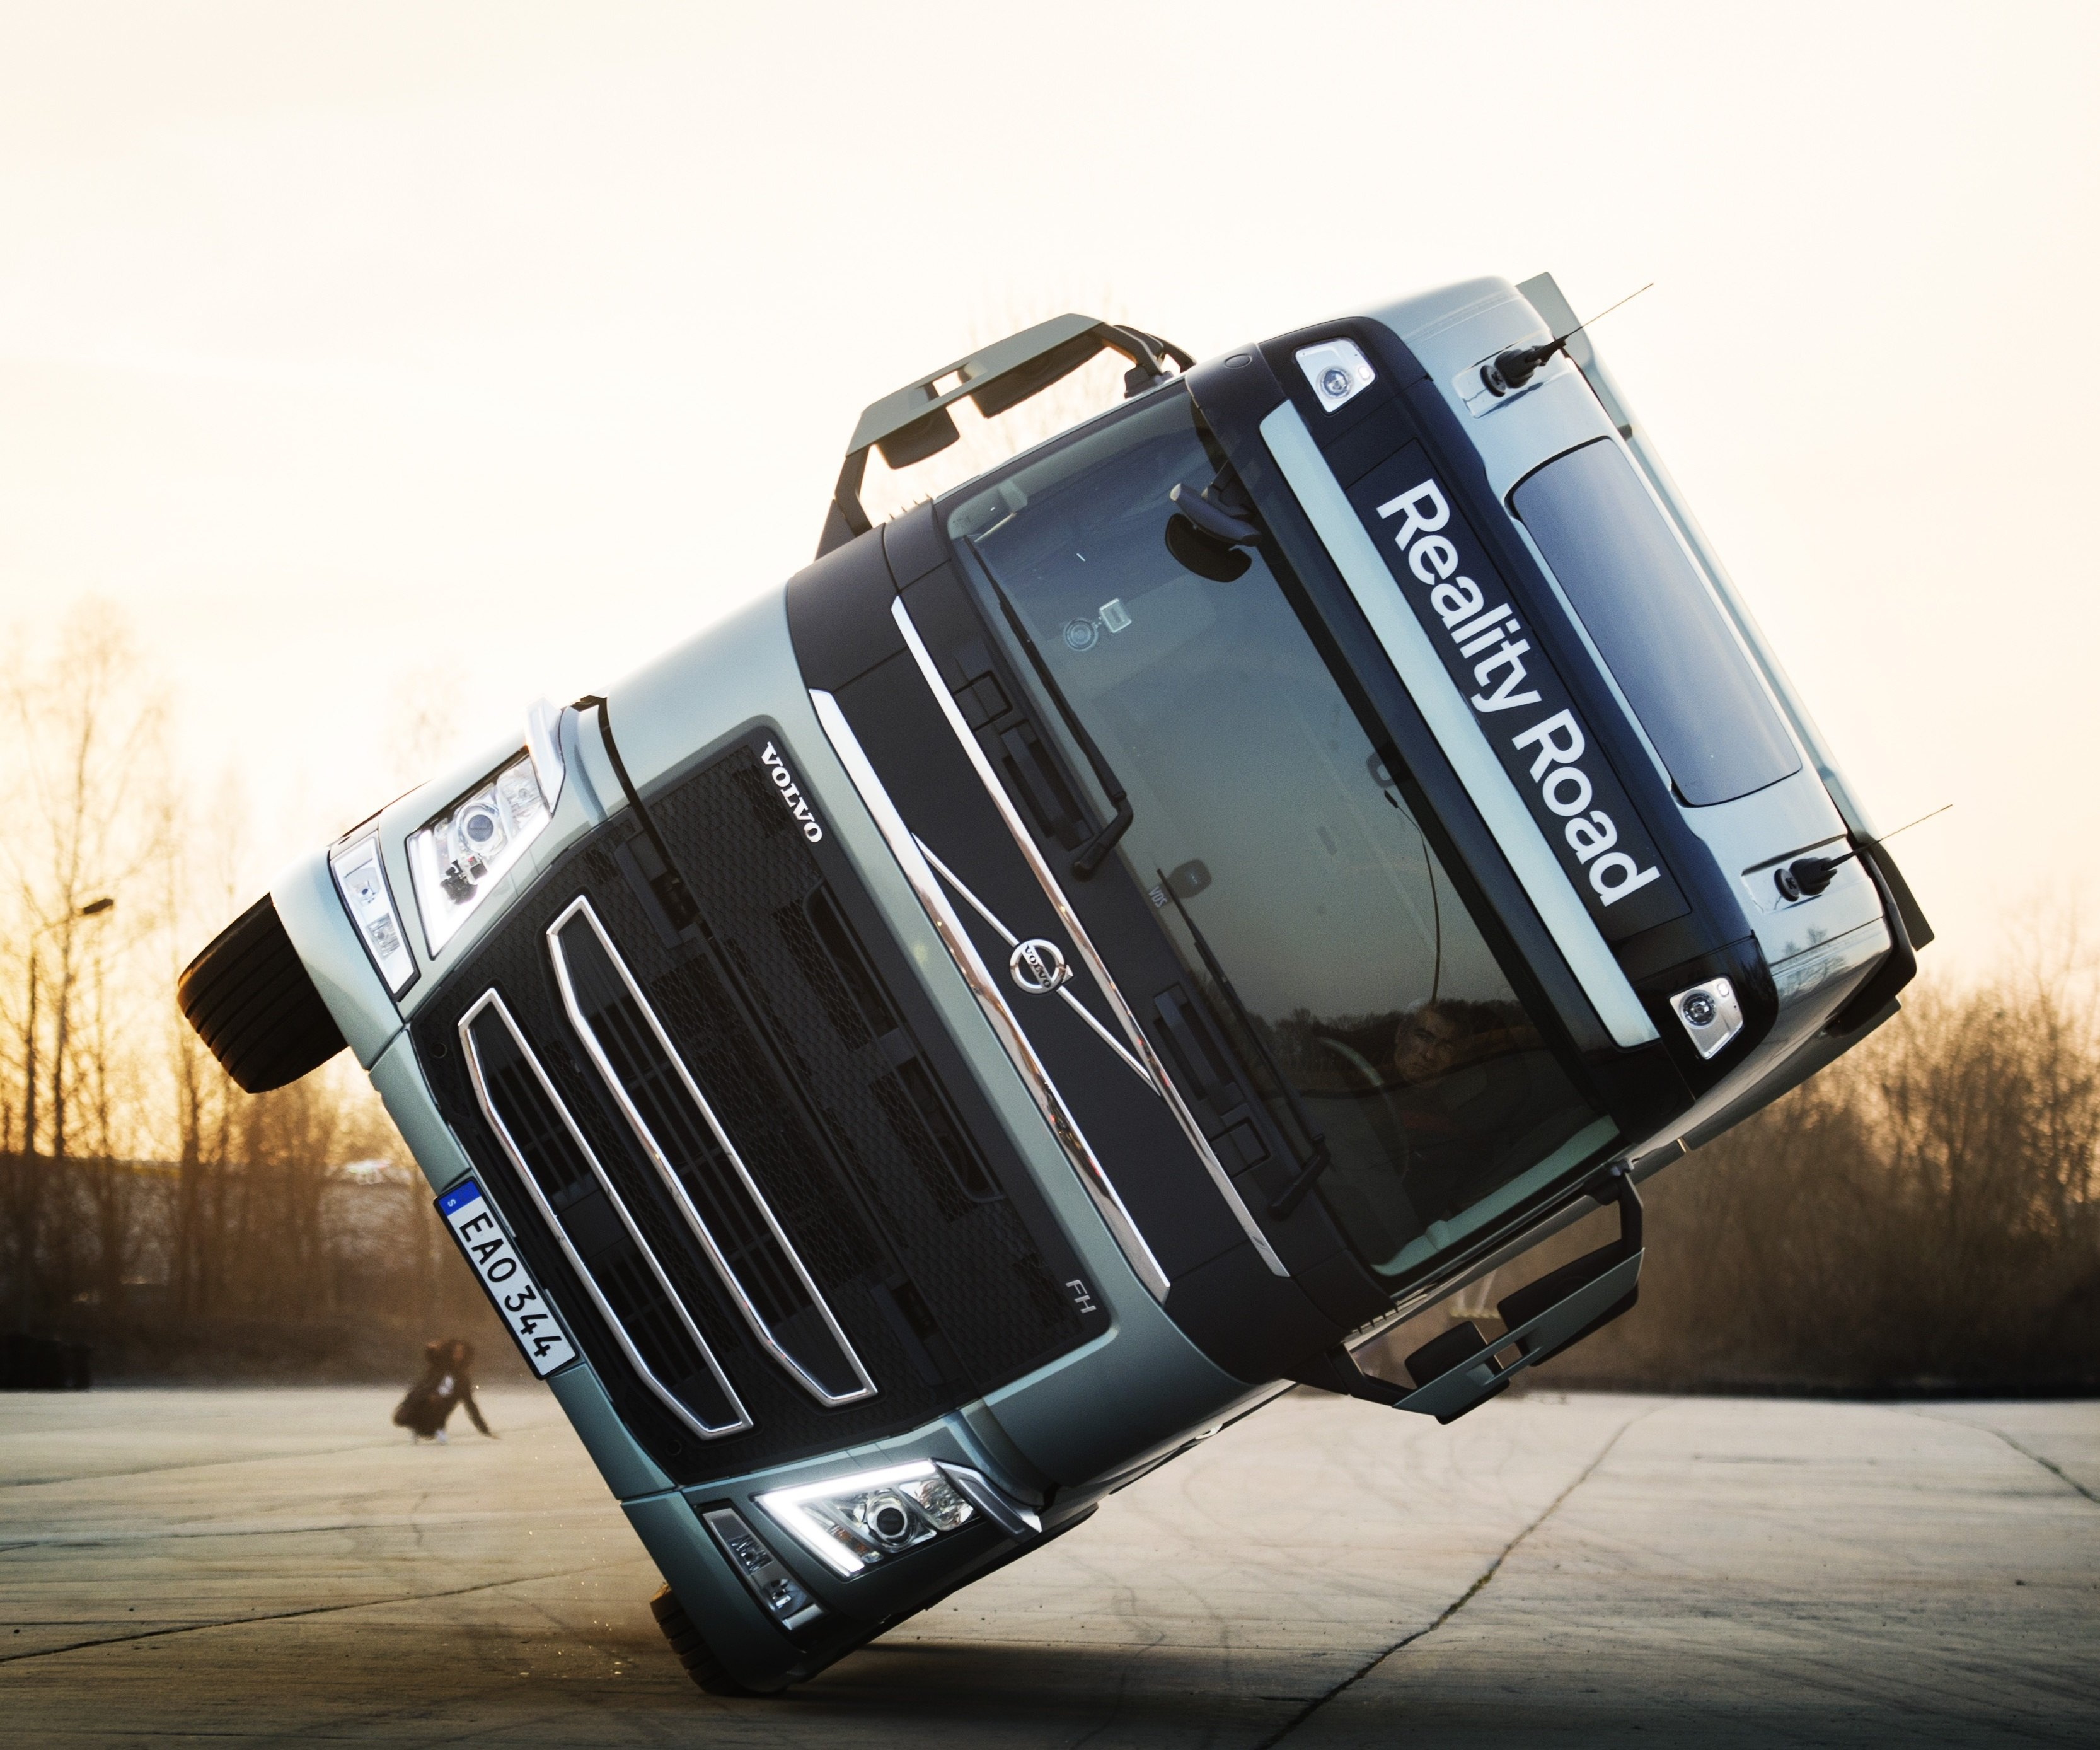 how-volvo-drove-an-fh-truck-on-two-wheels-for-mapeis-million-ways-to-live-music-video-96542_1